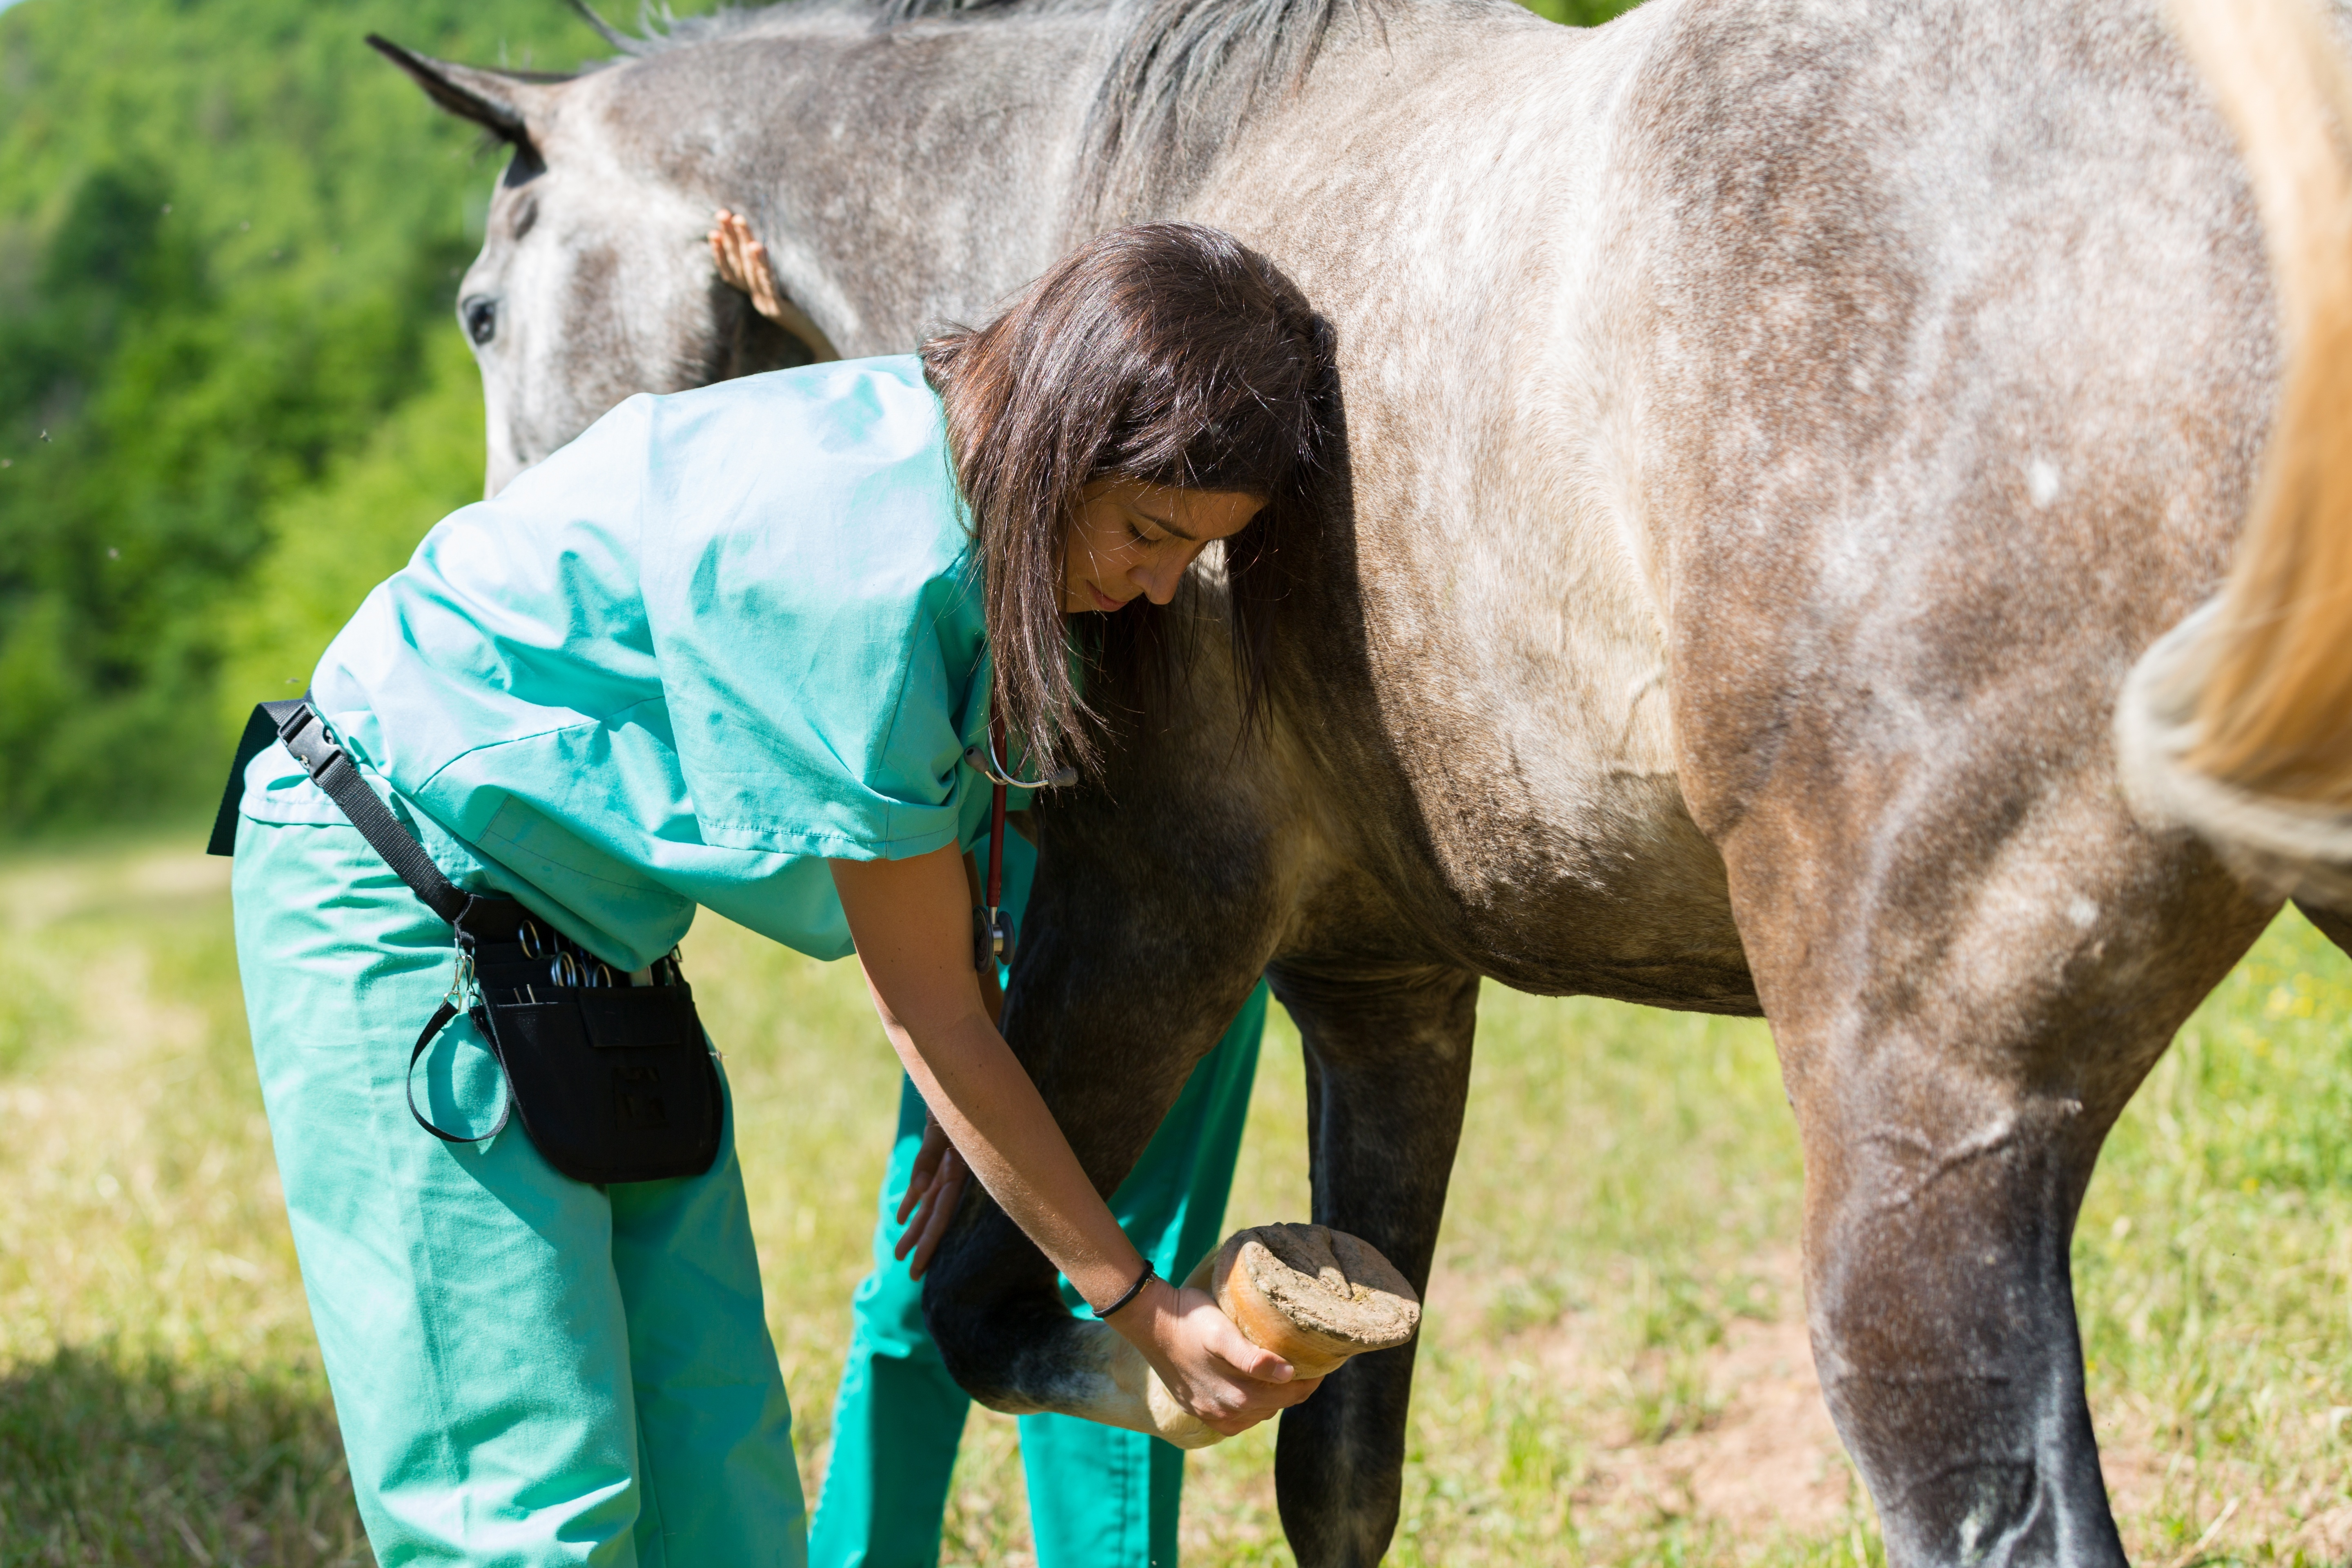 Tuskegee Pre-Veterinary Science program